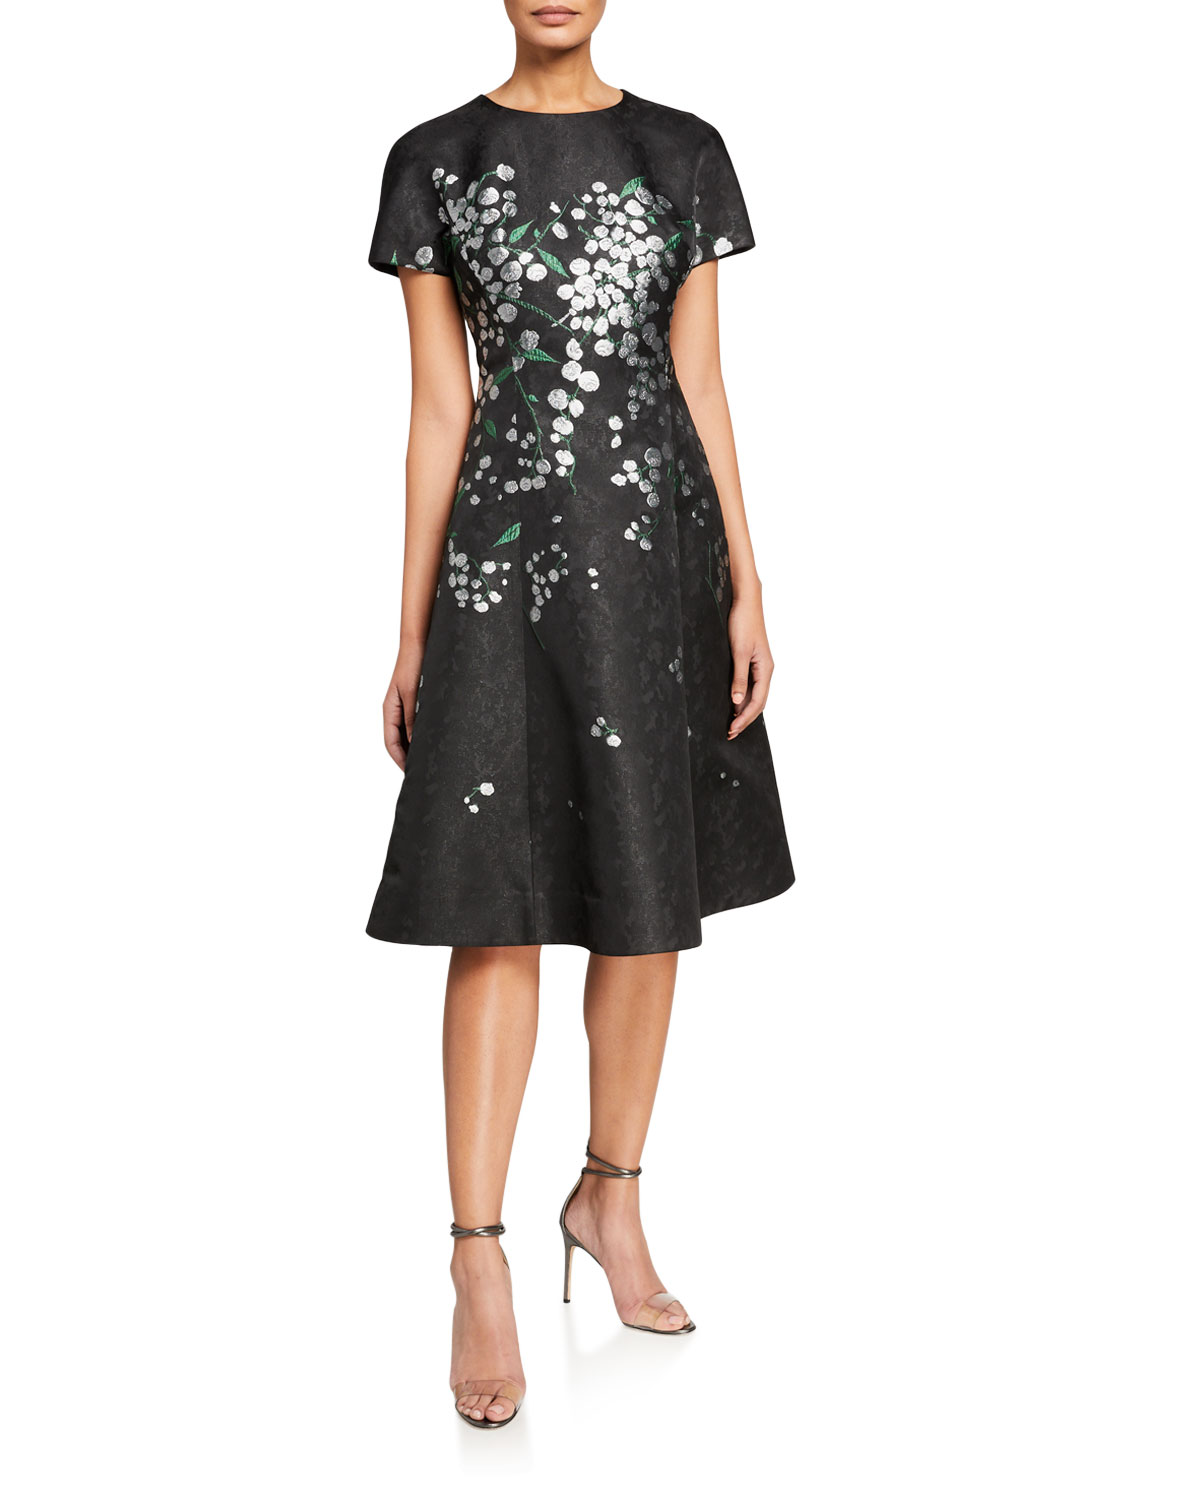 Rickie Freeman for Teri Jon Metallic Floral Embroidered Short-Sleeve A-Line Dress